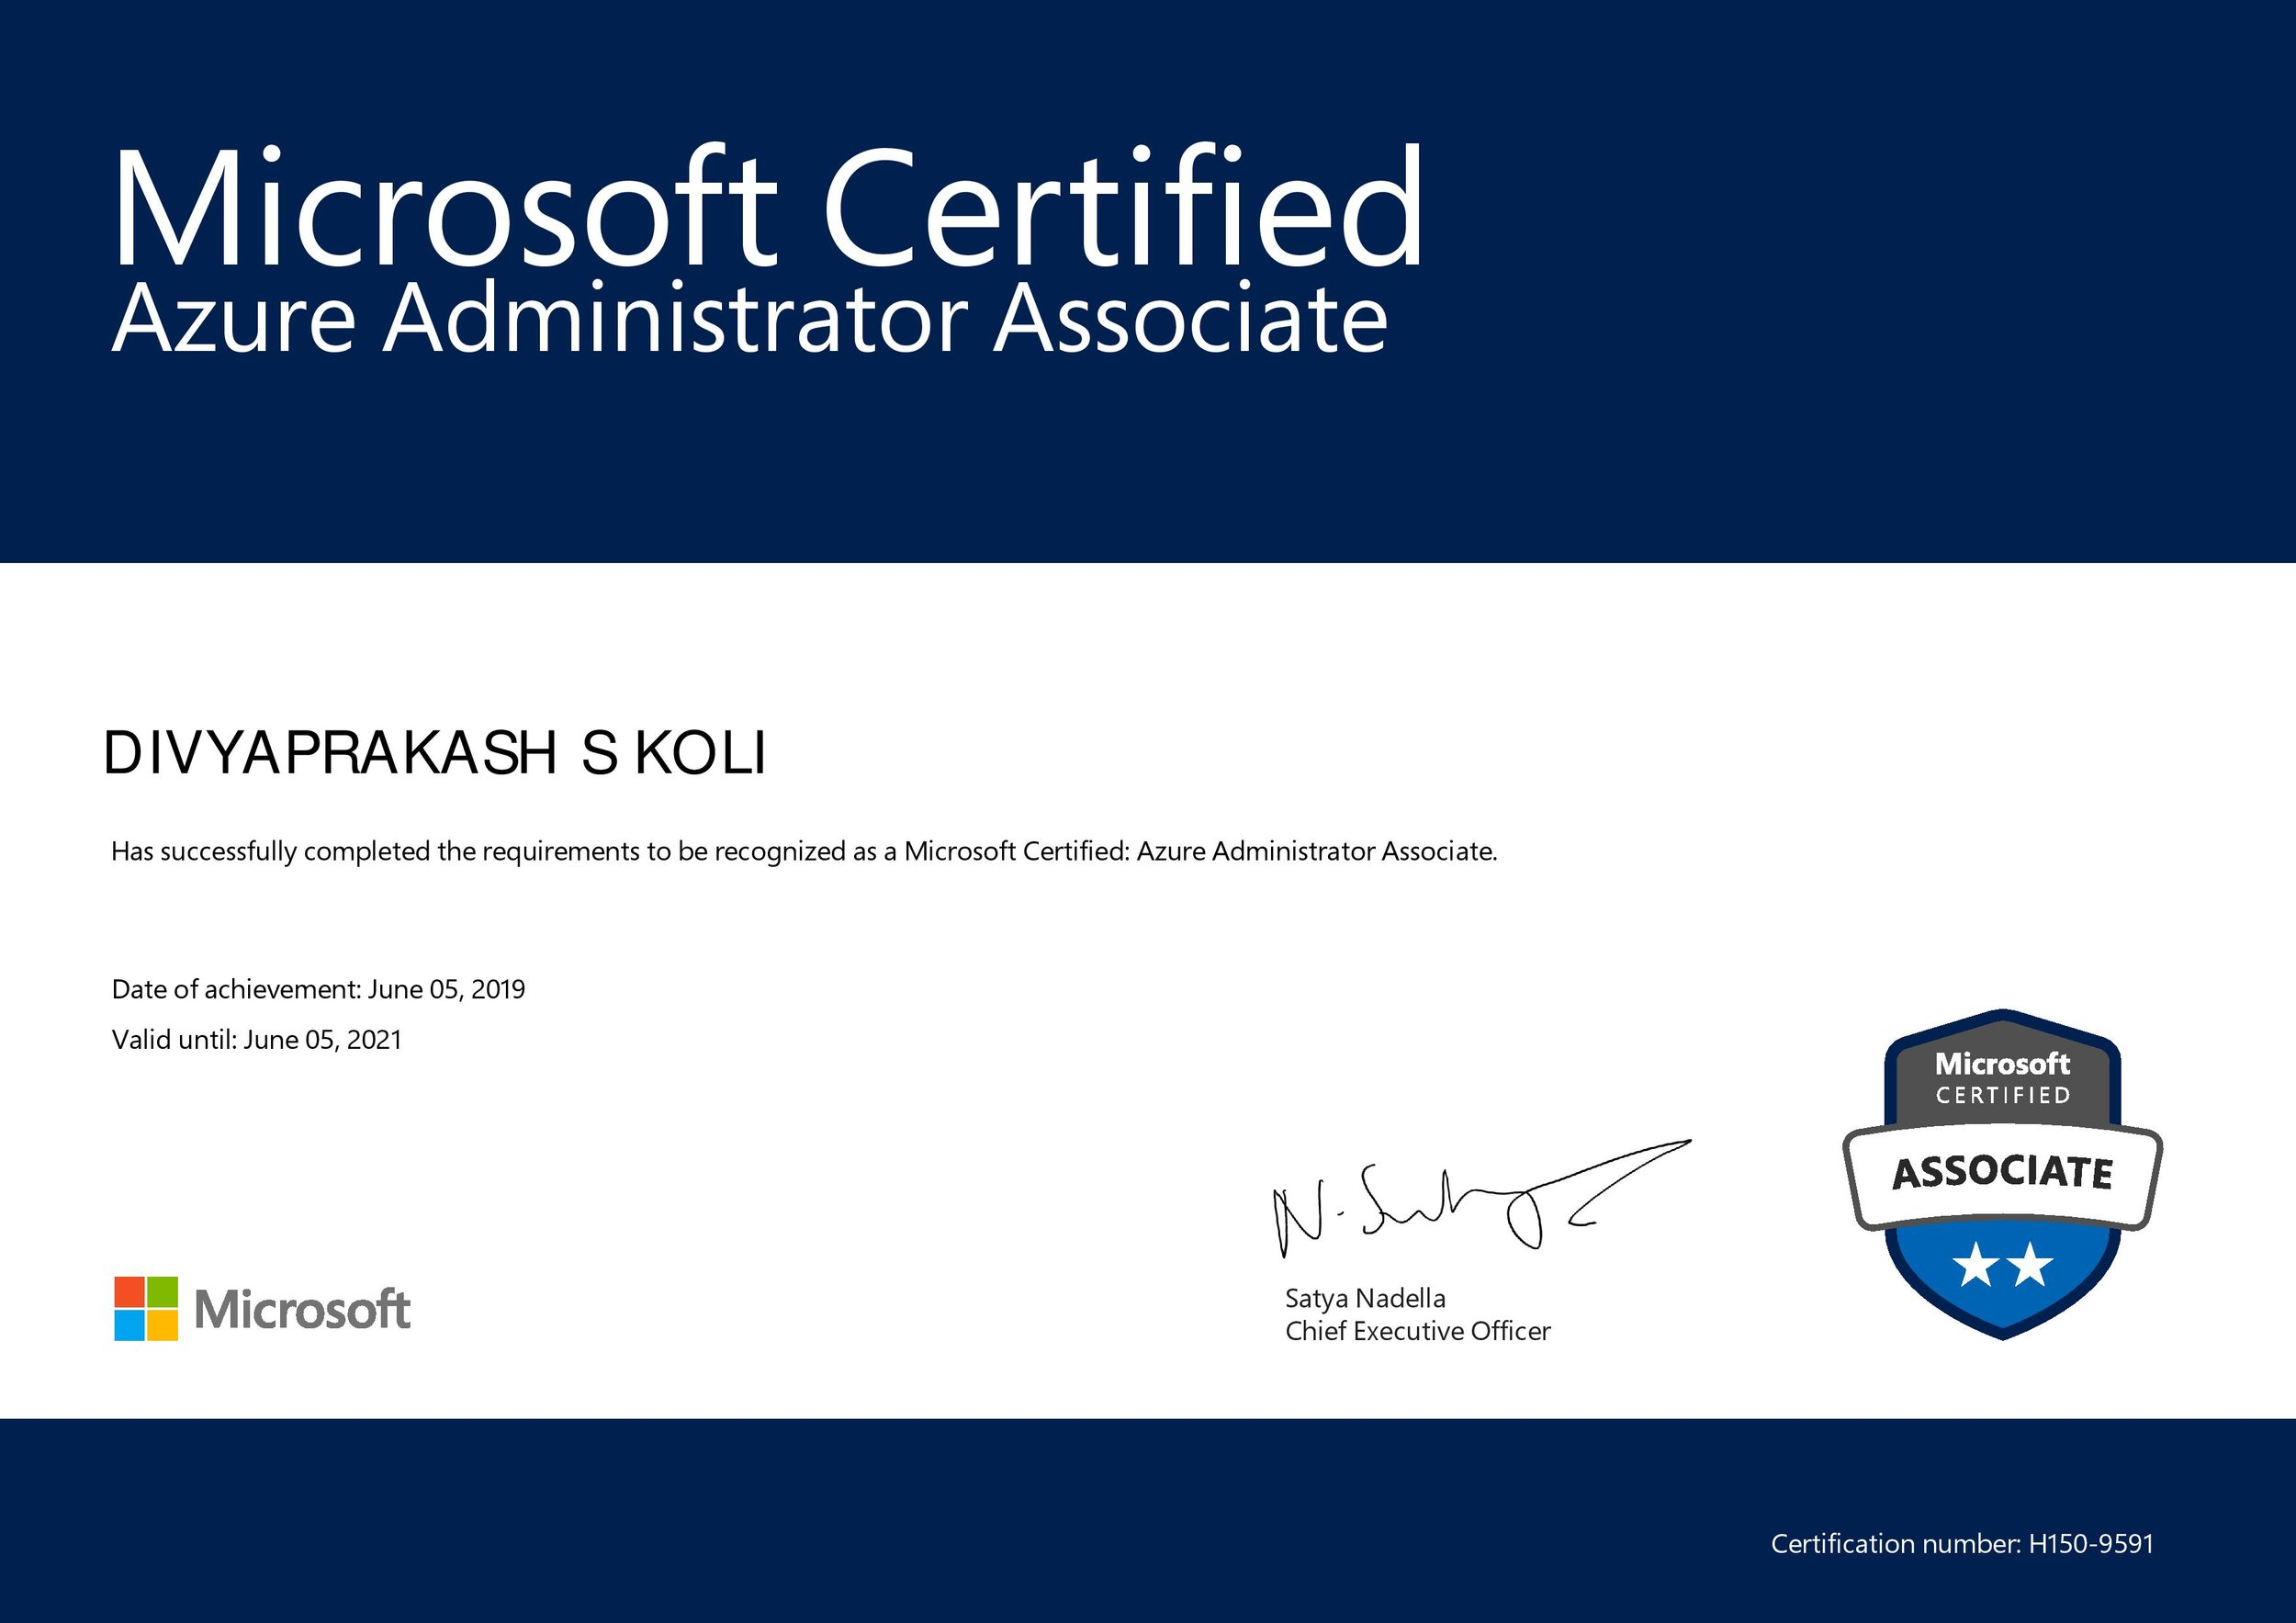 Microsoft_Certified_Professional_Certificate_0-page-001.jpg